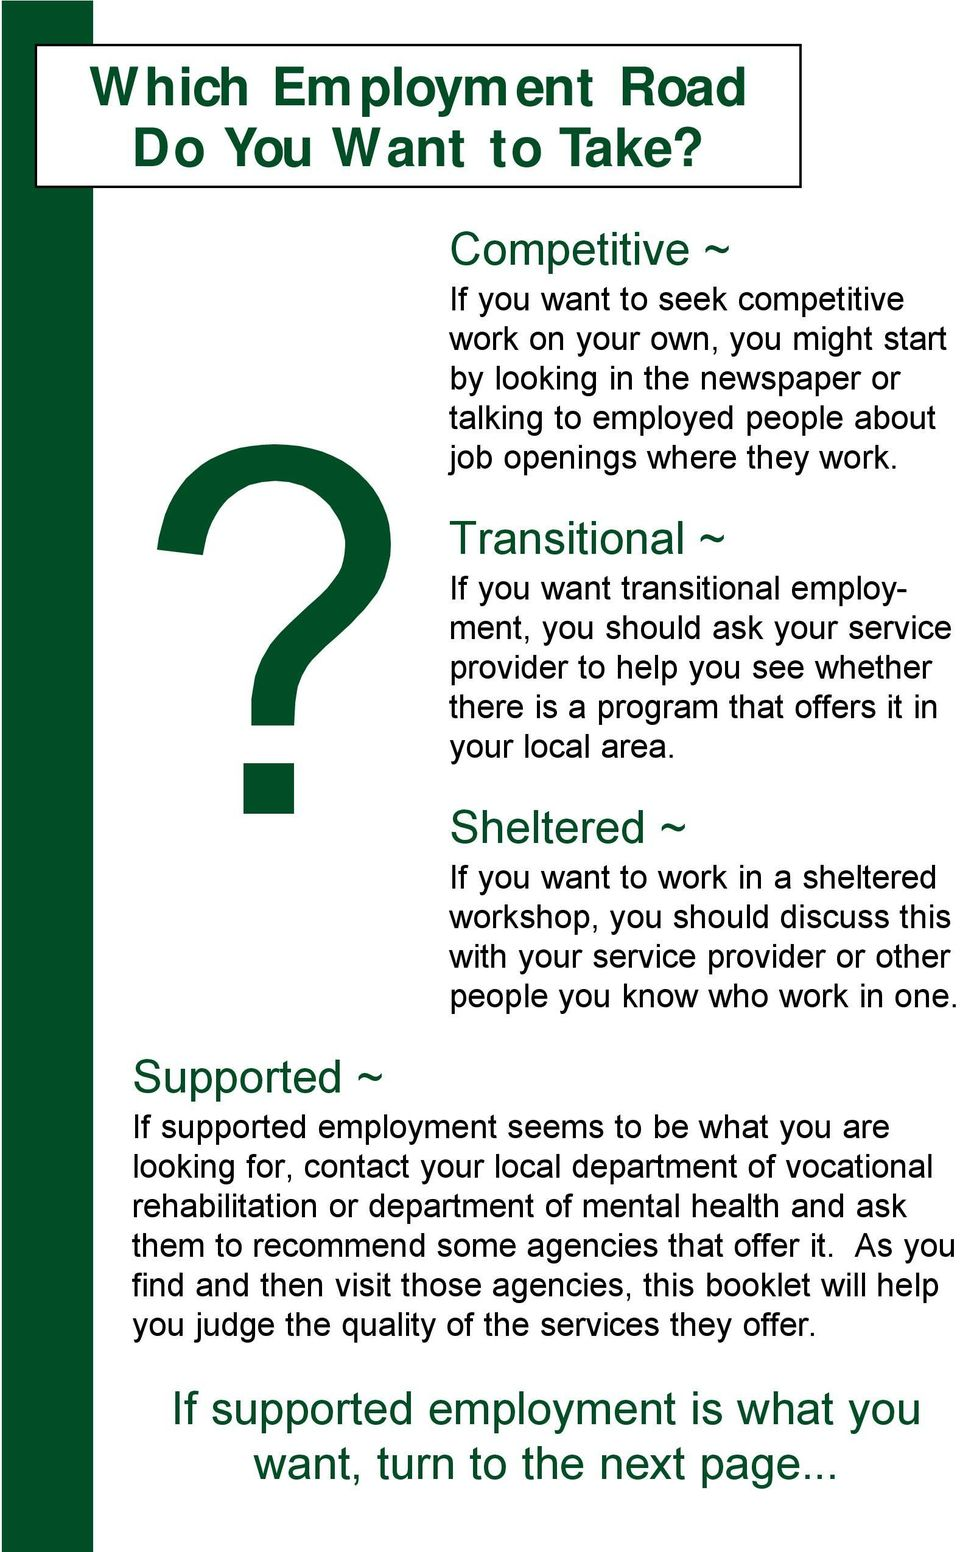 Transitional ~ If you want transitional employment, you should ask your service provider to help you see whether there is a program that offers it in your local area.